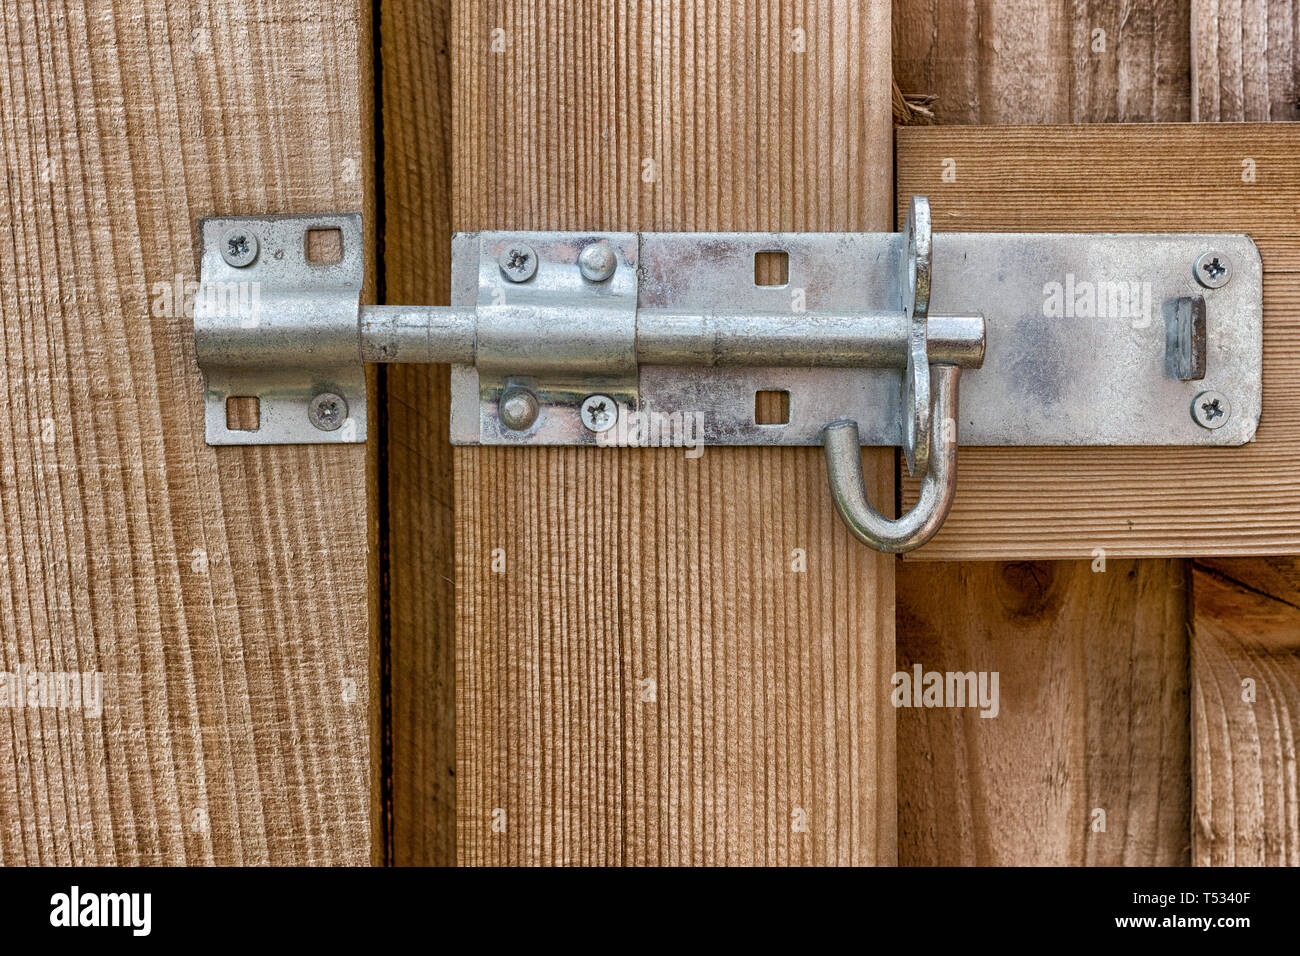 A steel bolt securing a wooden gate to a fence post close up with wooden grain detail - Stock Image